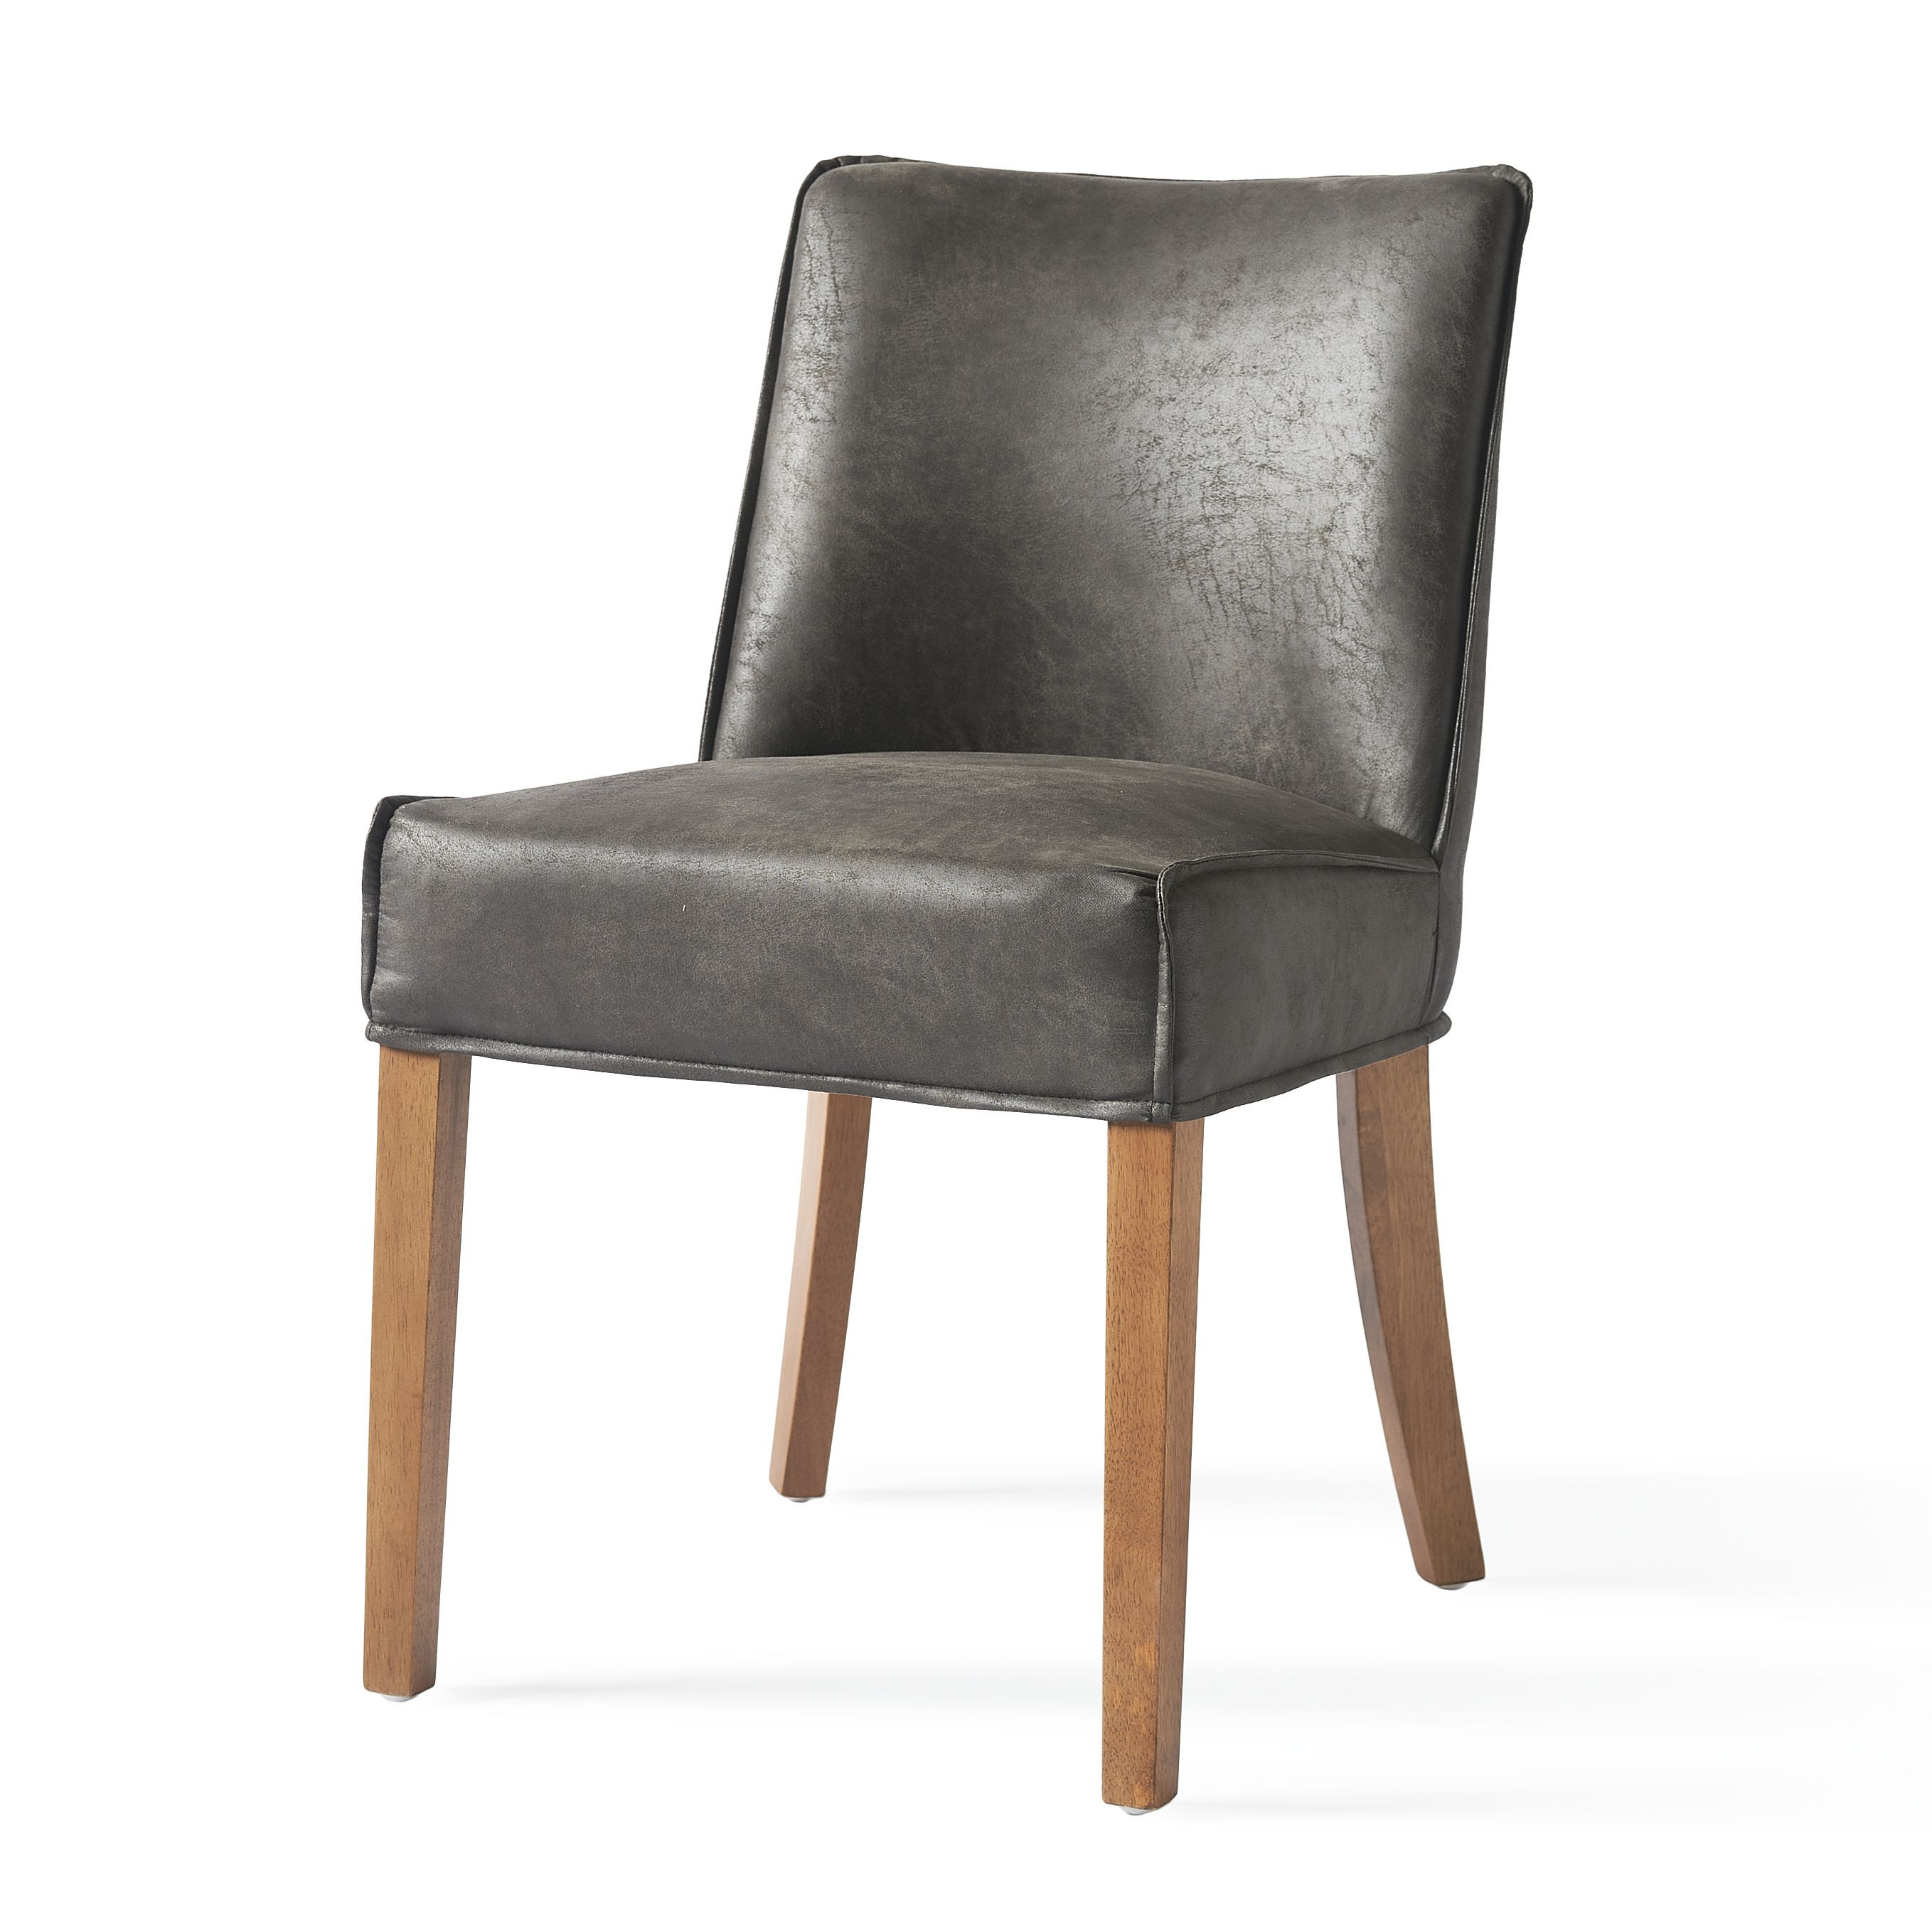 Bridge Lane Dining Chair pellini espresso / Rivièra Maison